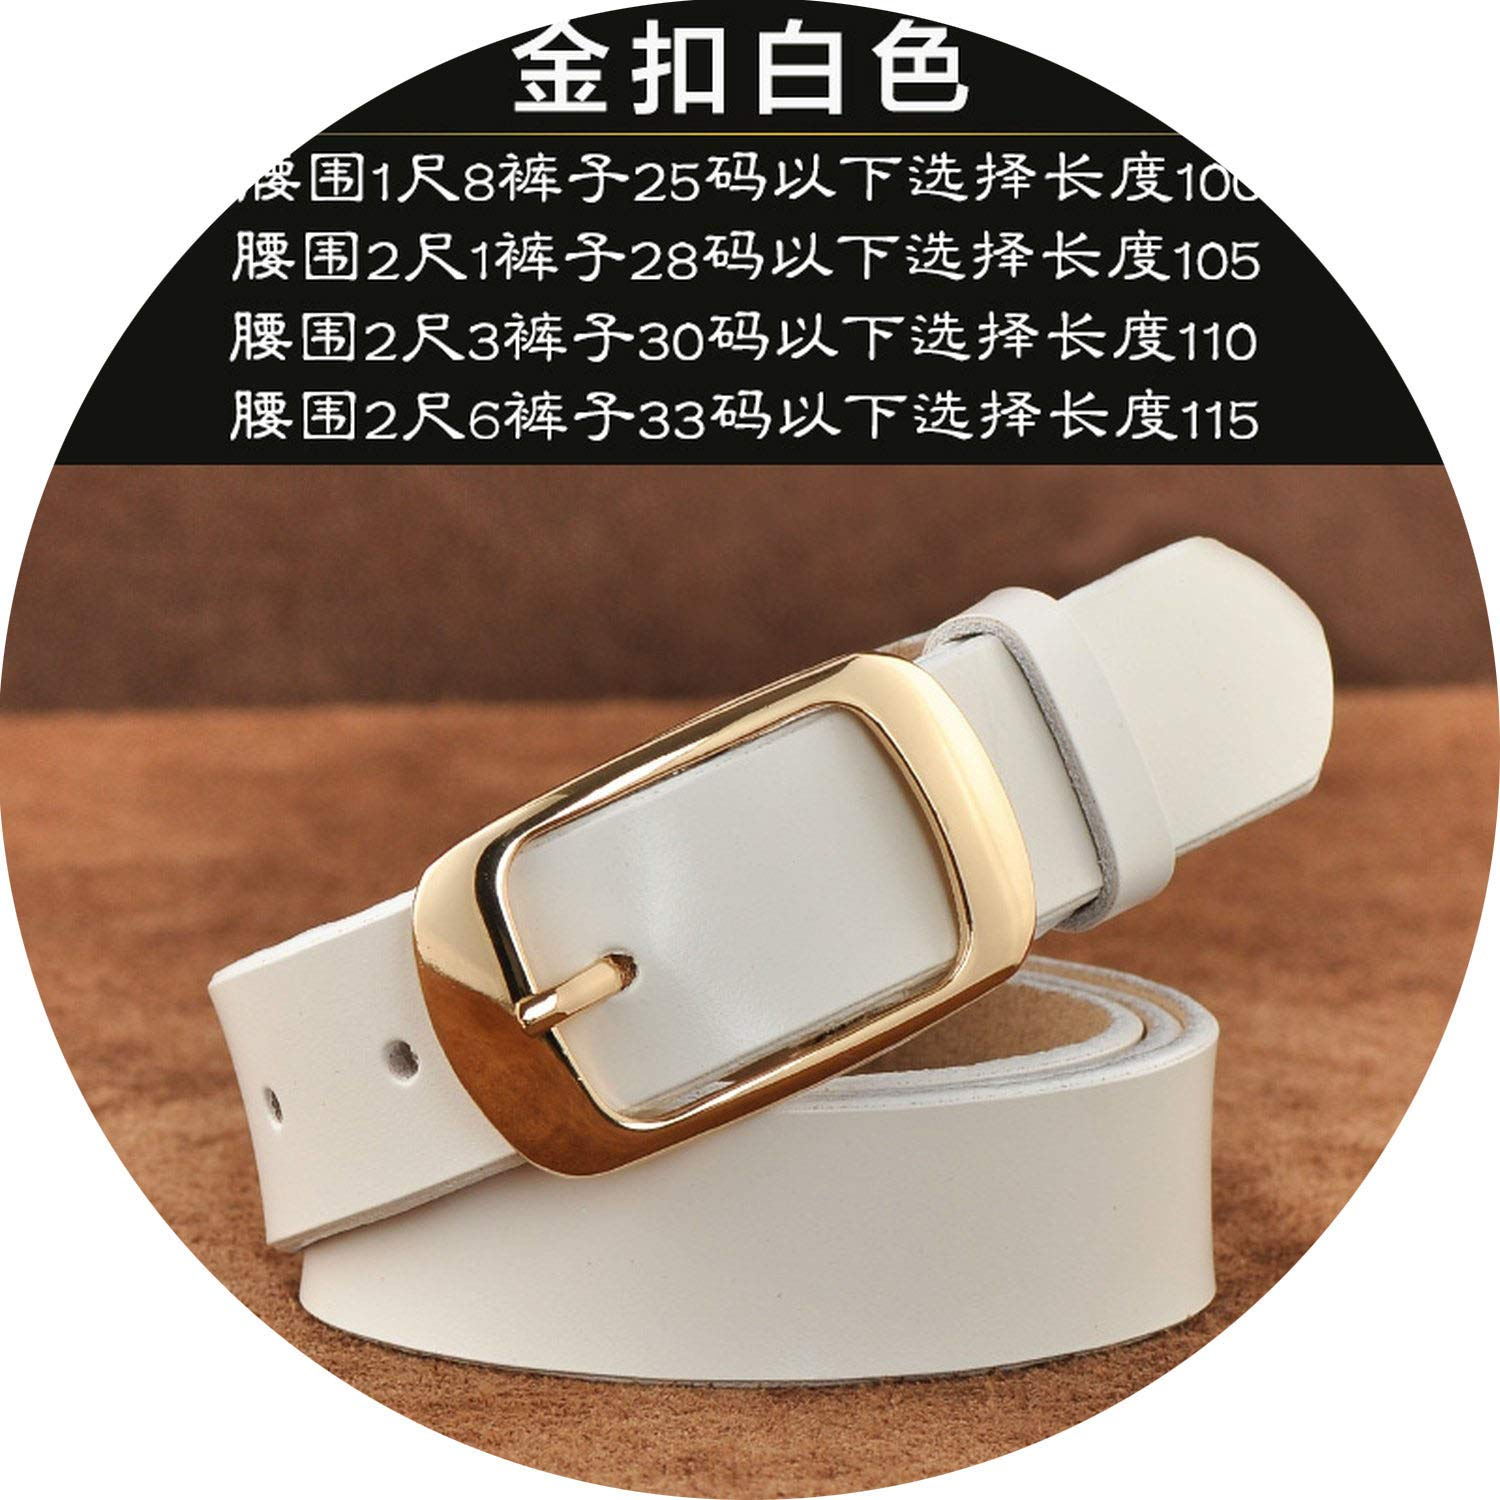 New Designer Fashion Womens Belts Genuine Leather Brand Straps Female Waistband Pin Buckles Fancy Vintage for Jeans